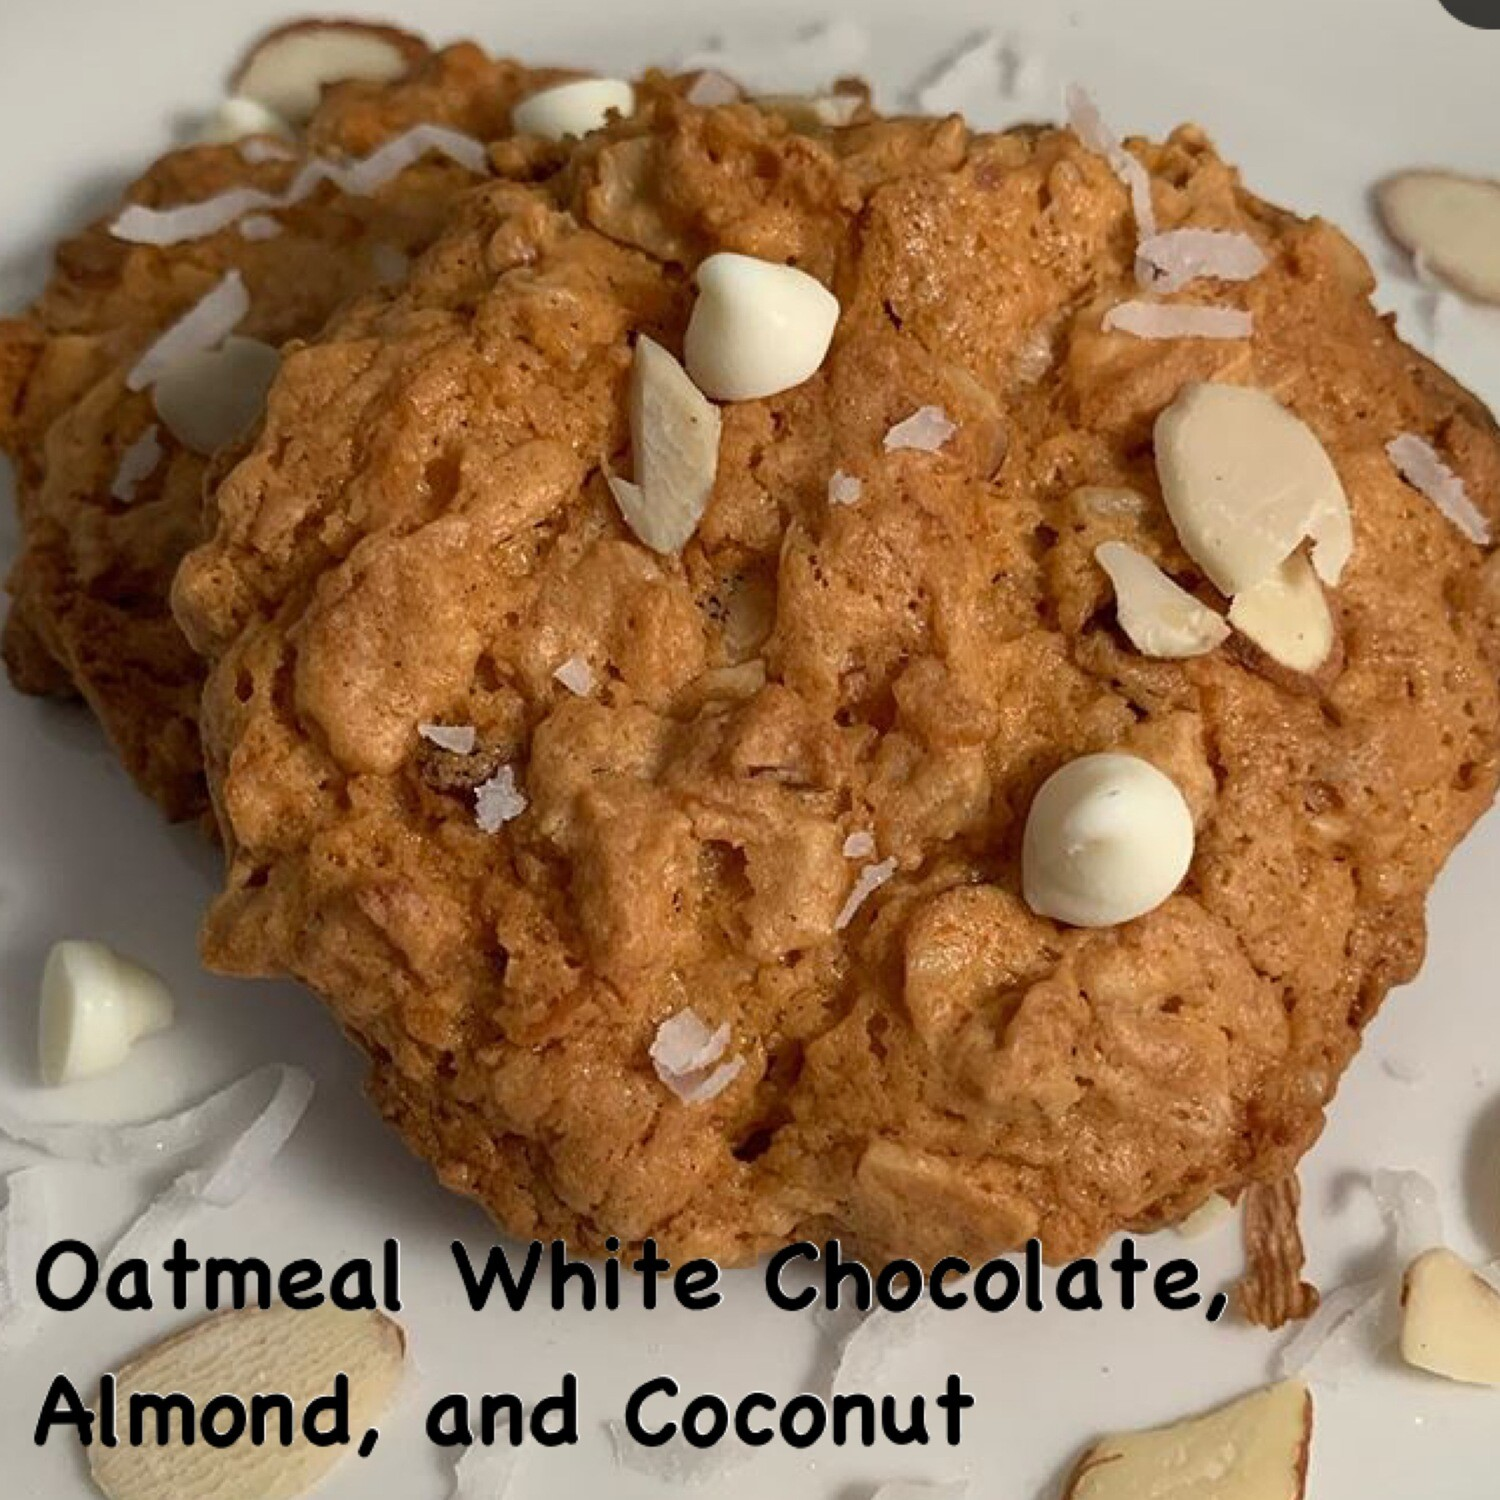 White Chocolate, Almond, and Coconut